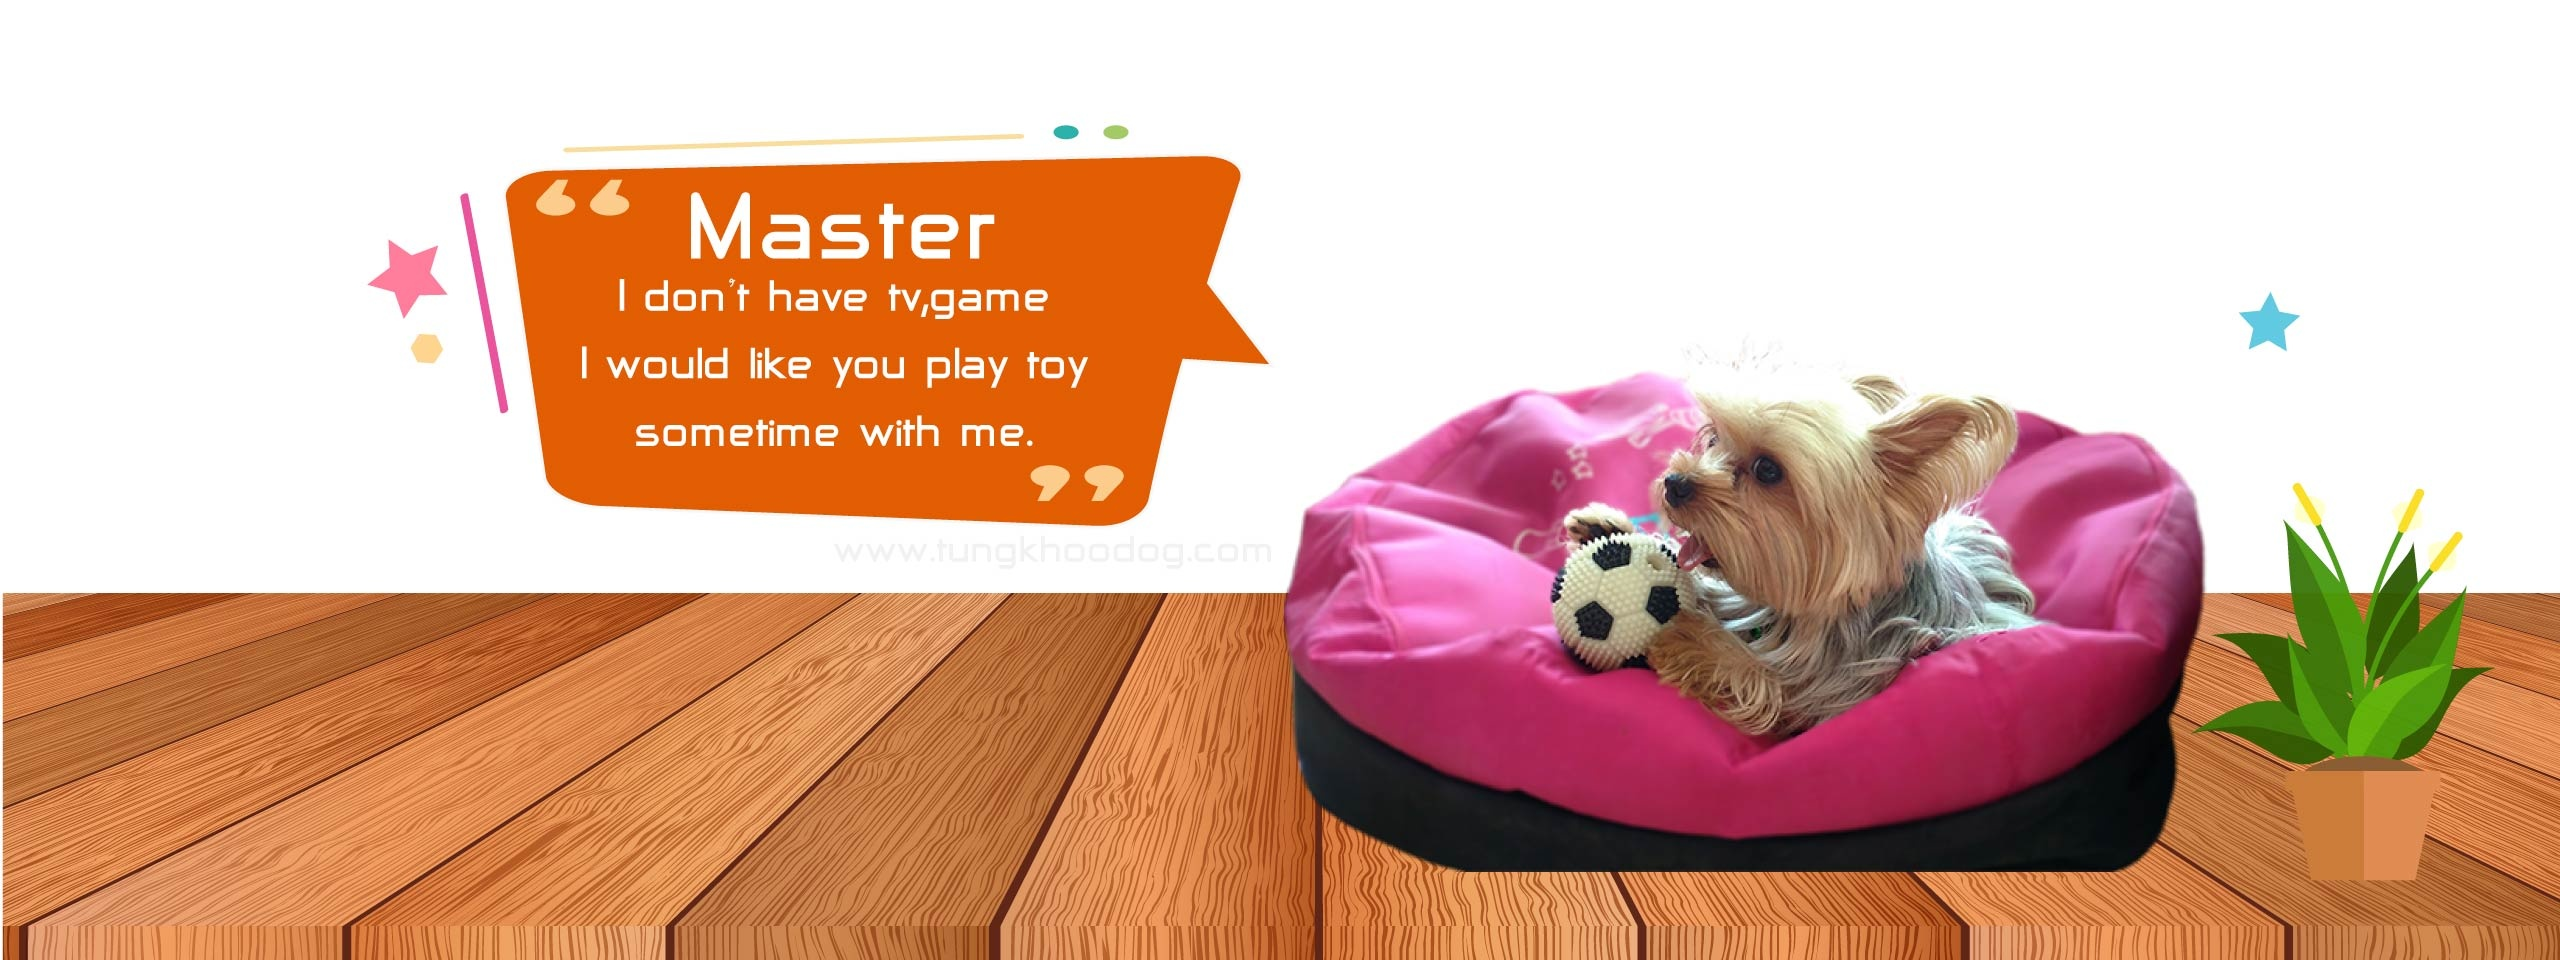 Master I don't have tv,game,chat. I would like you play toy sometime with me.